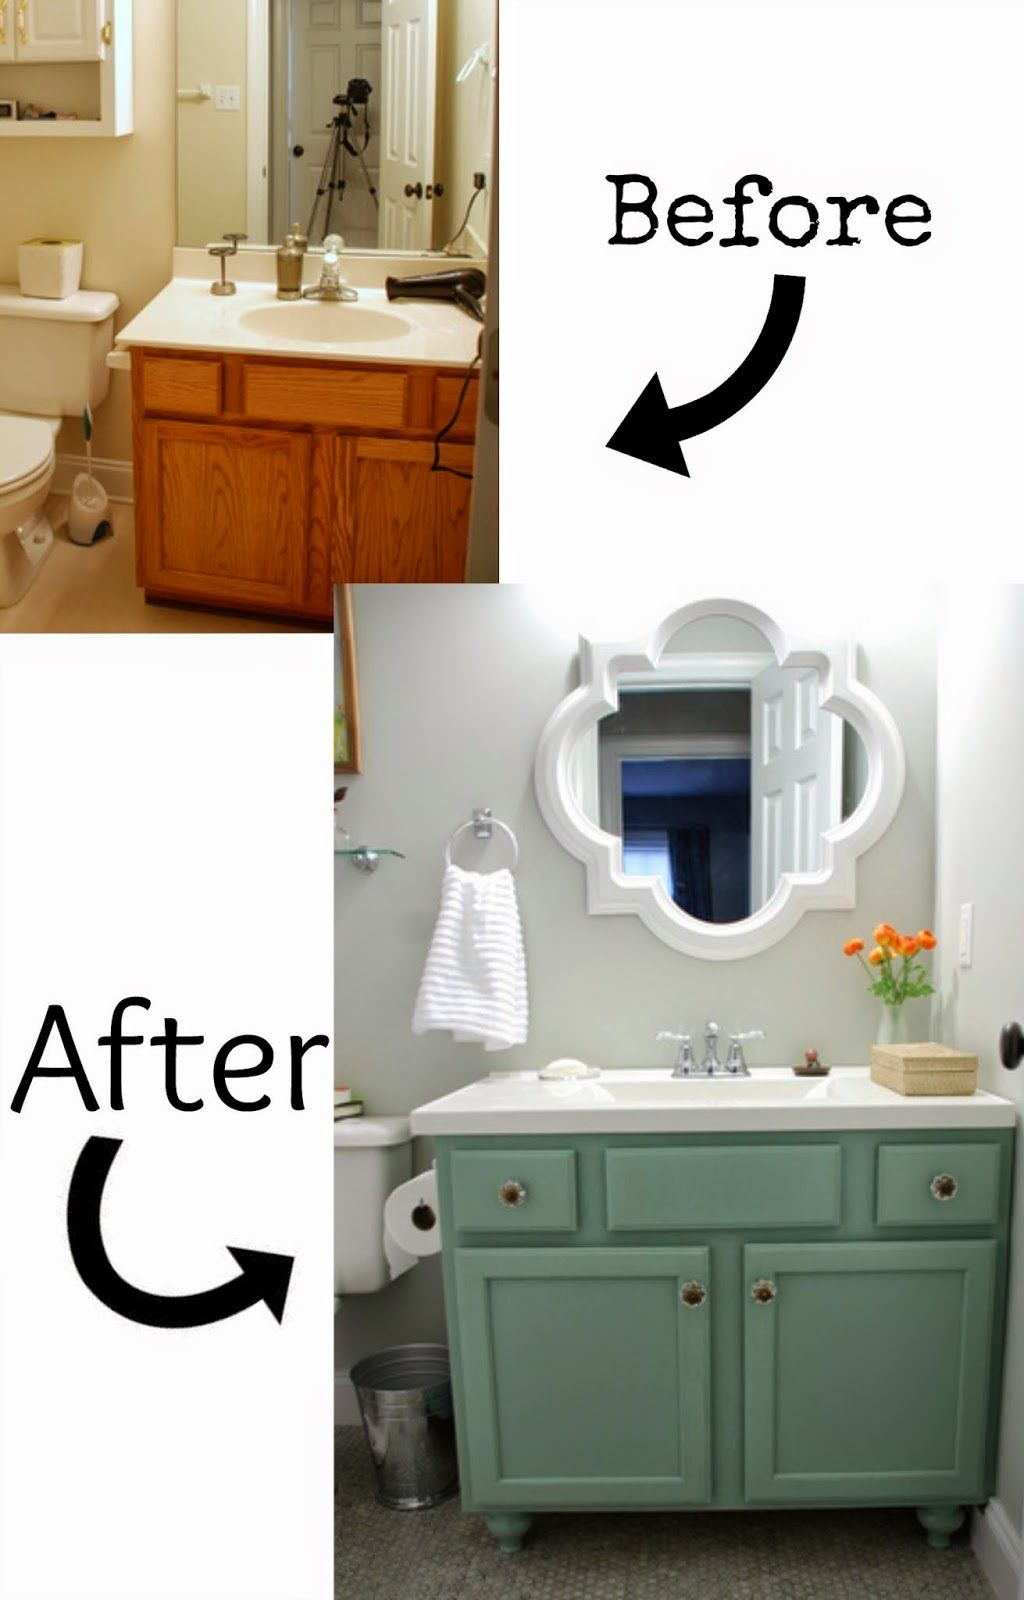 7 Best Diy Bathroom Vanity Makeovers Diy Bathroom Vanity Makeover Diy Bathroom Vanity Bathroom Vanity Makeover